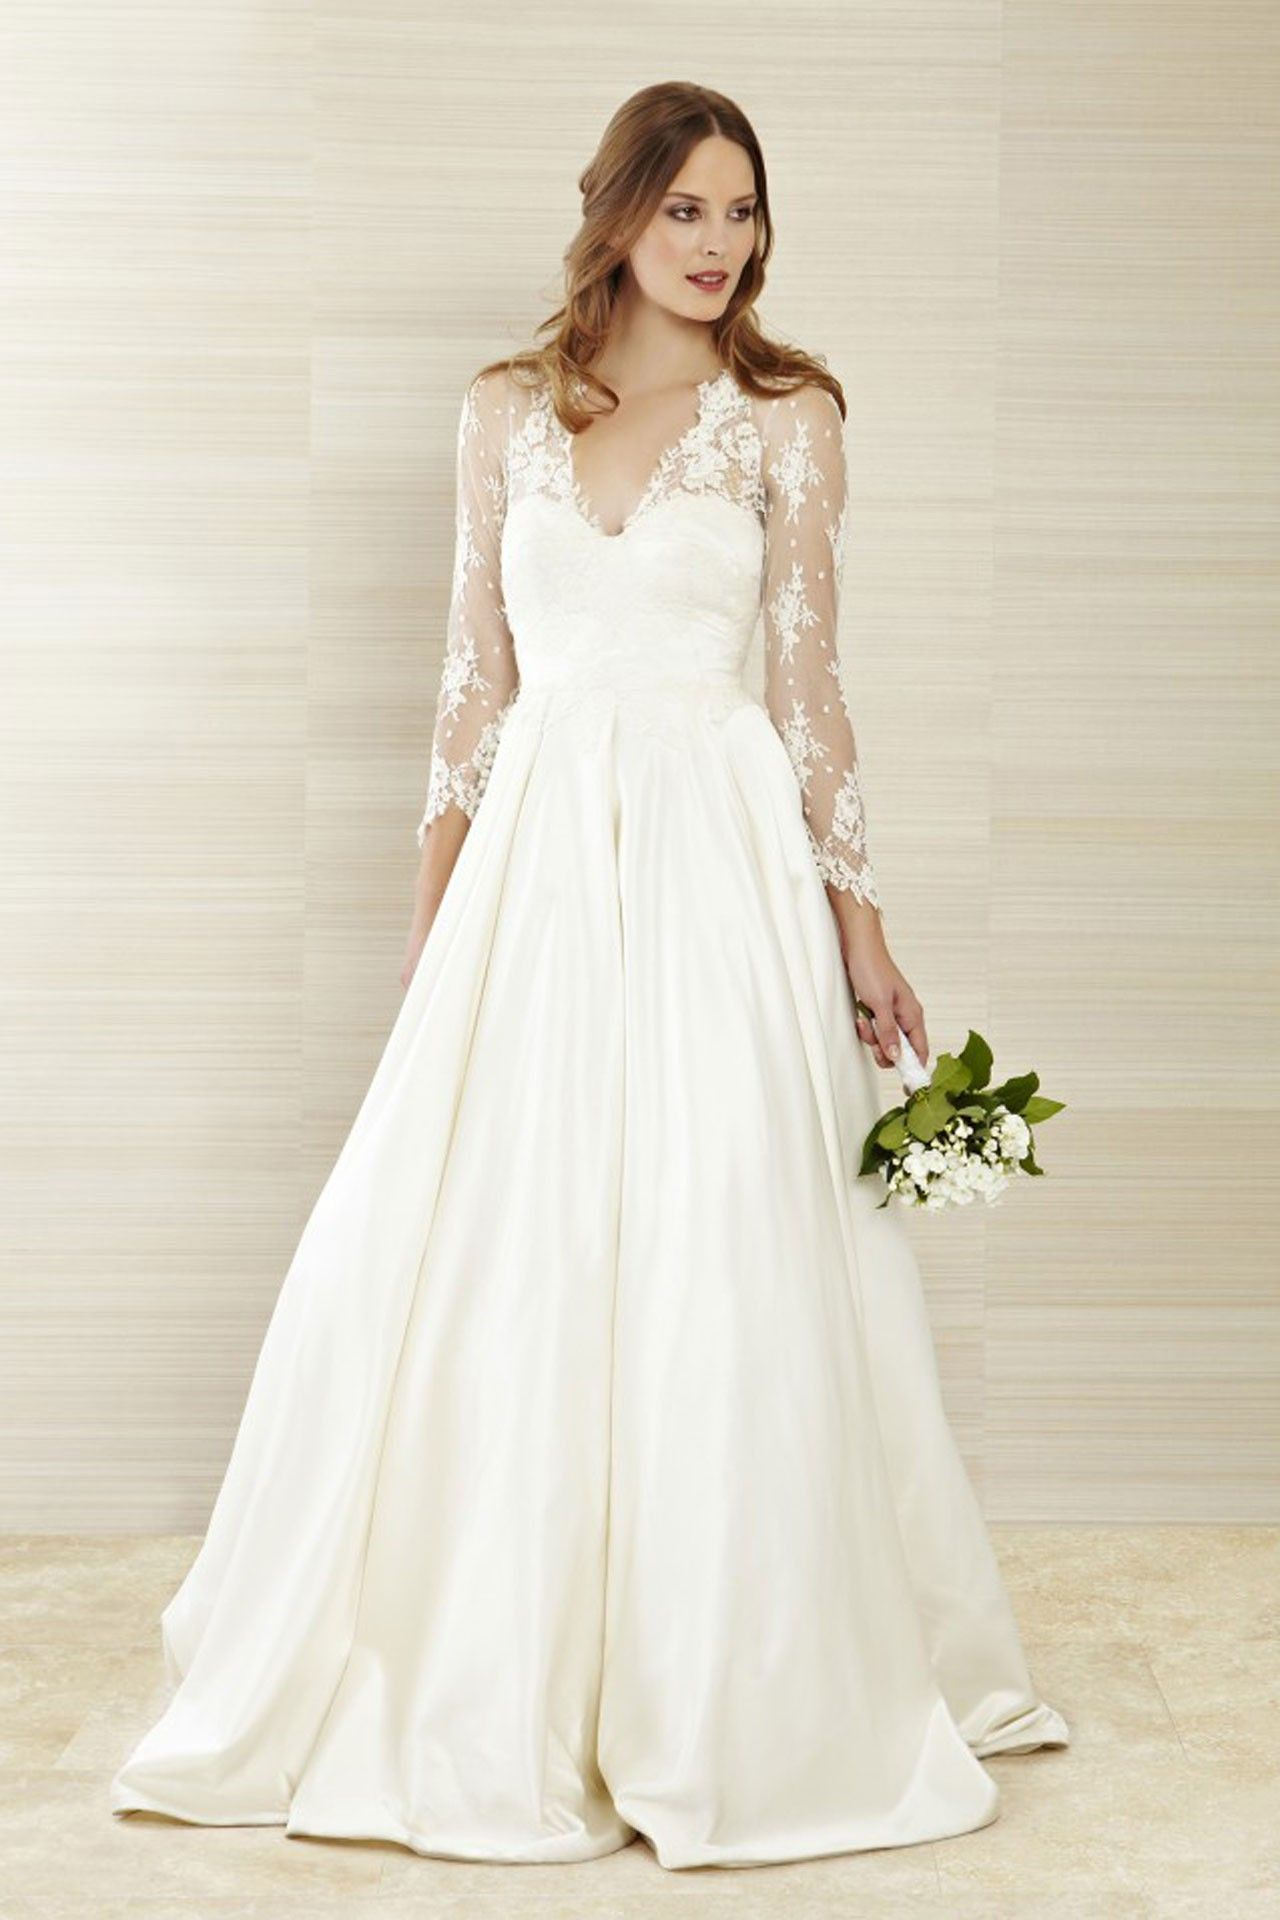 Wedding dresses the ultimate gallery bridesmagazine wedding dresses the ultimate gallery bridesmagazine ombrellifo Choice Image